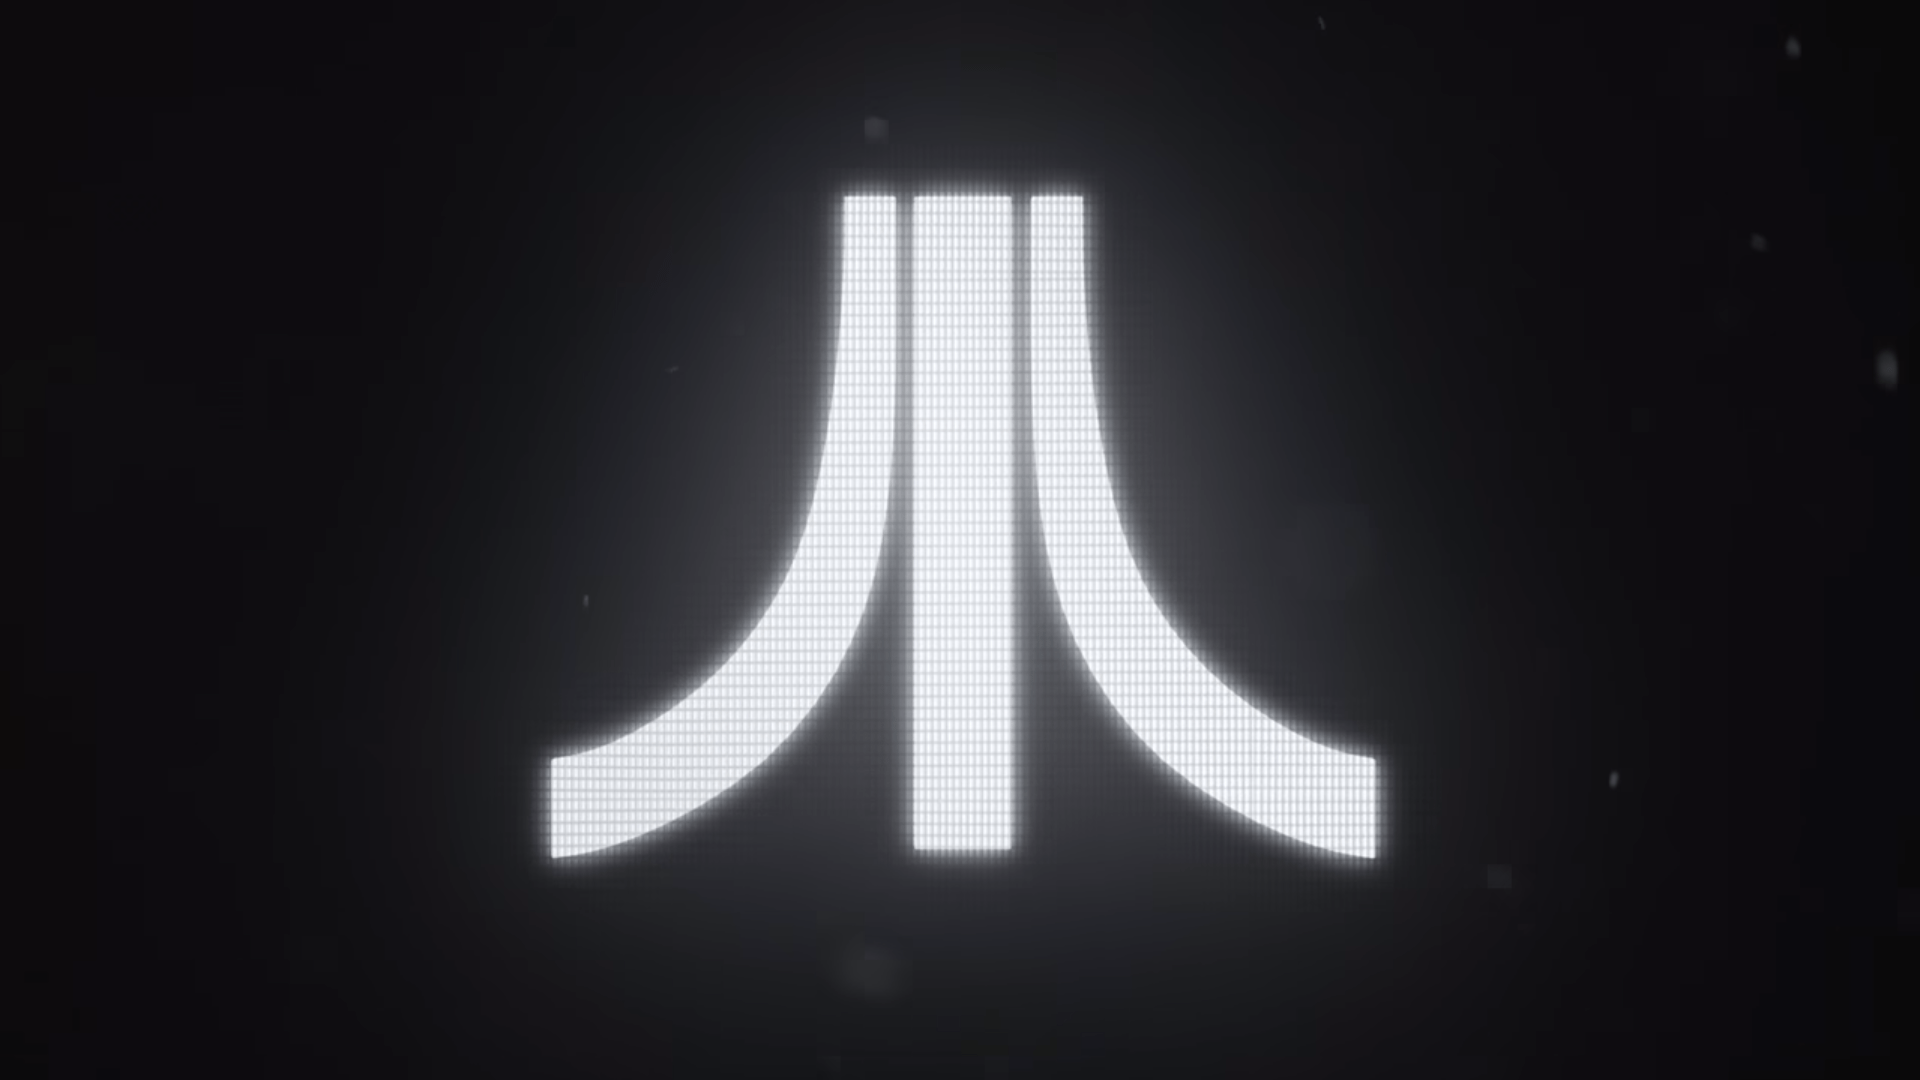 Atari is indeed working on a new game console, CEO confirms